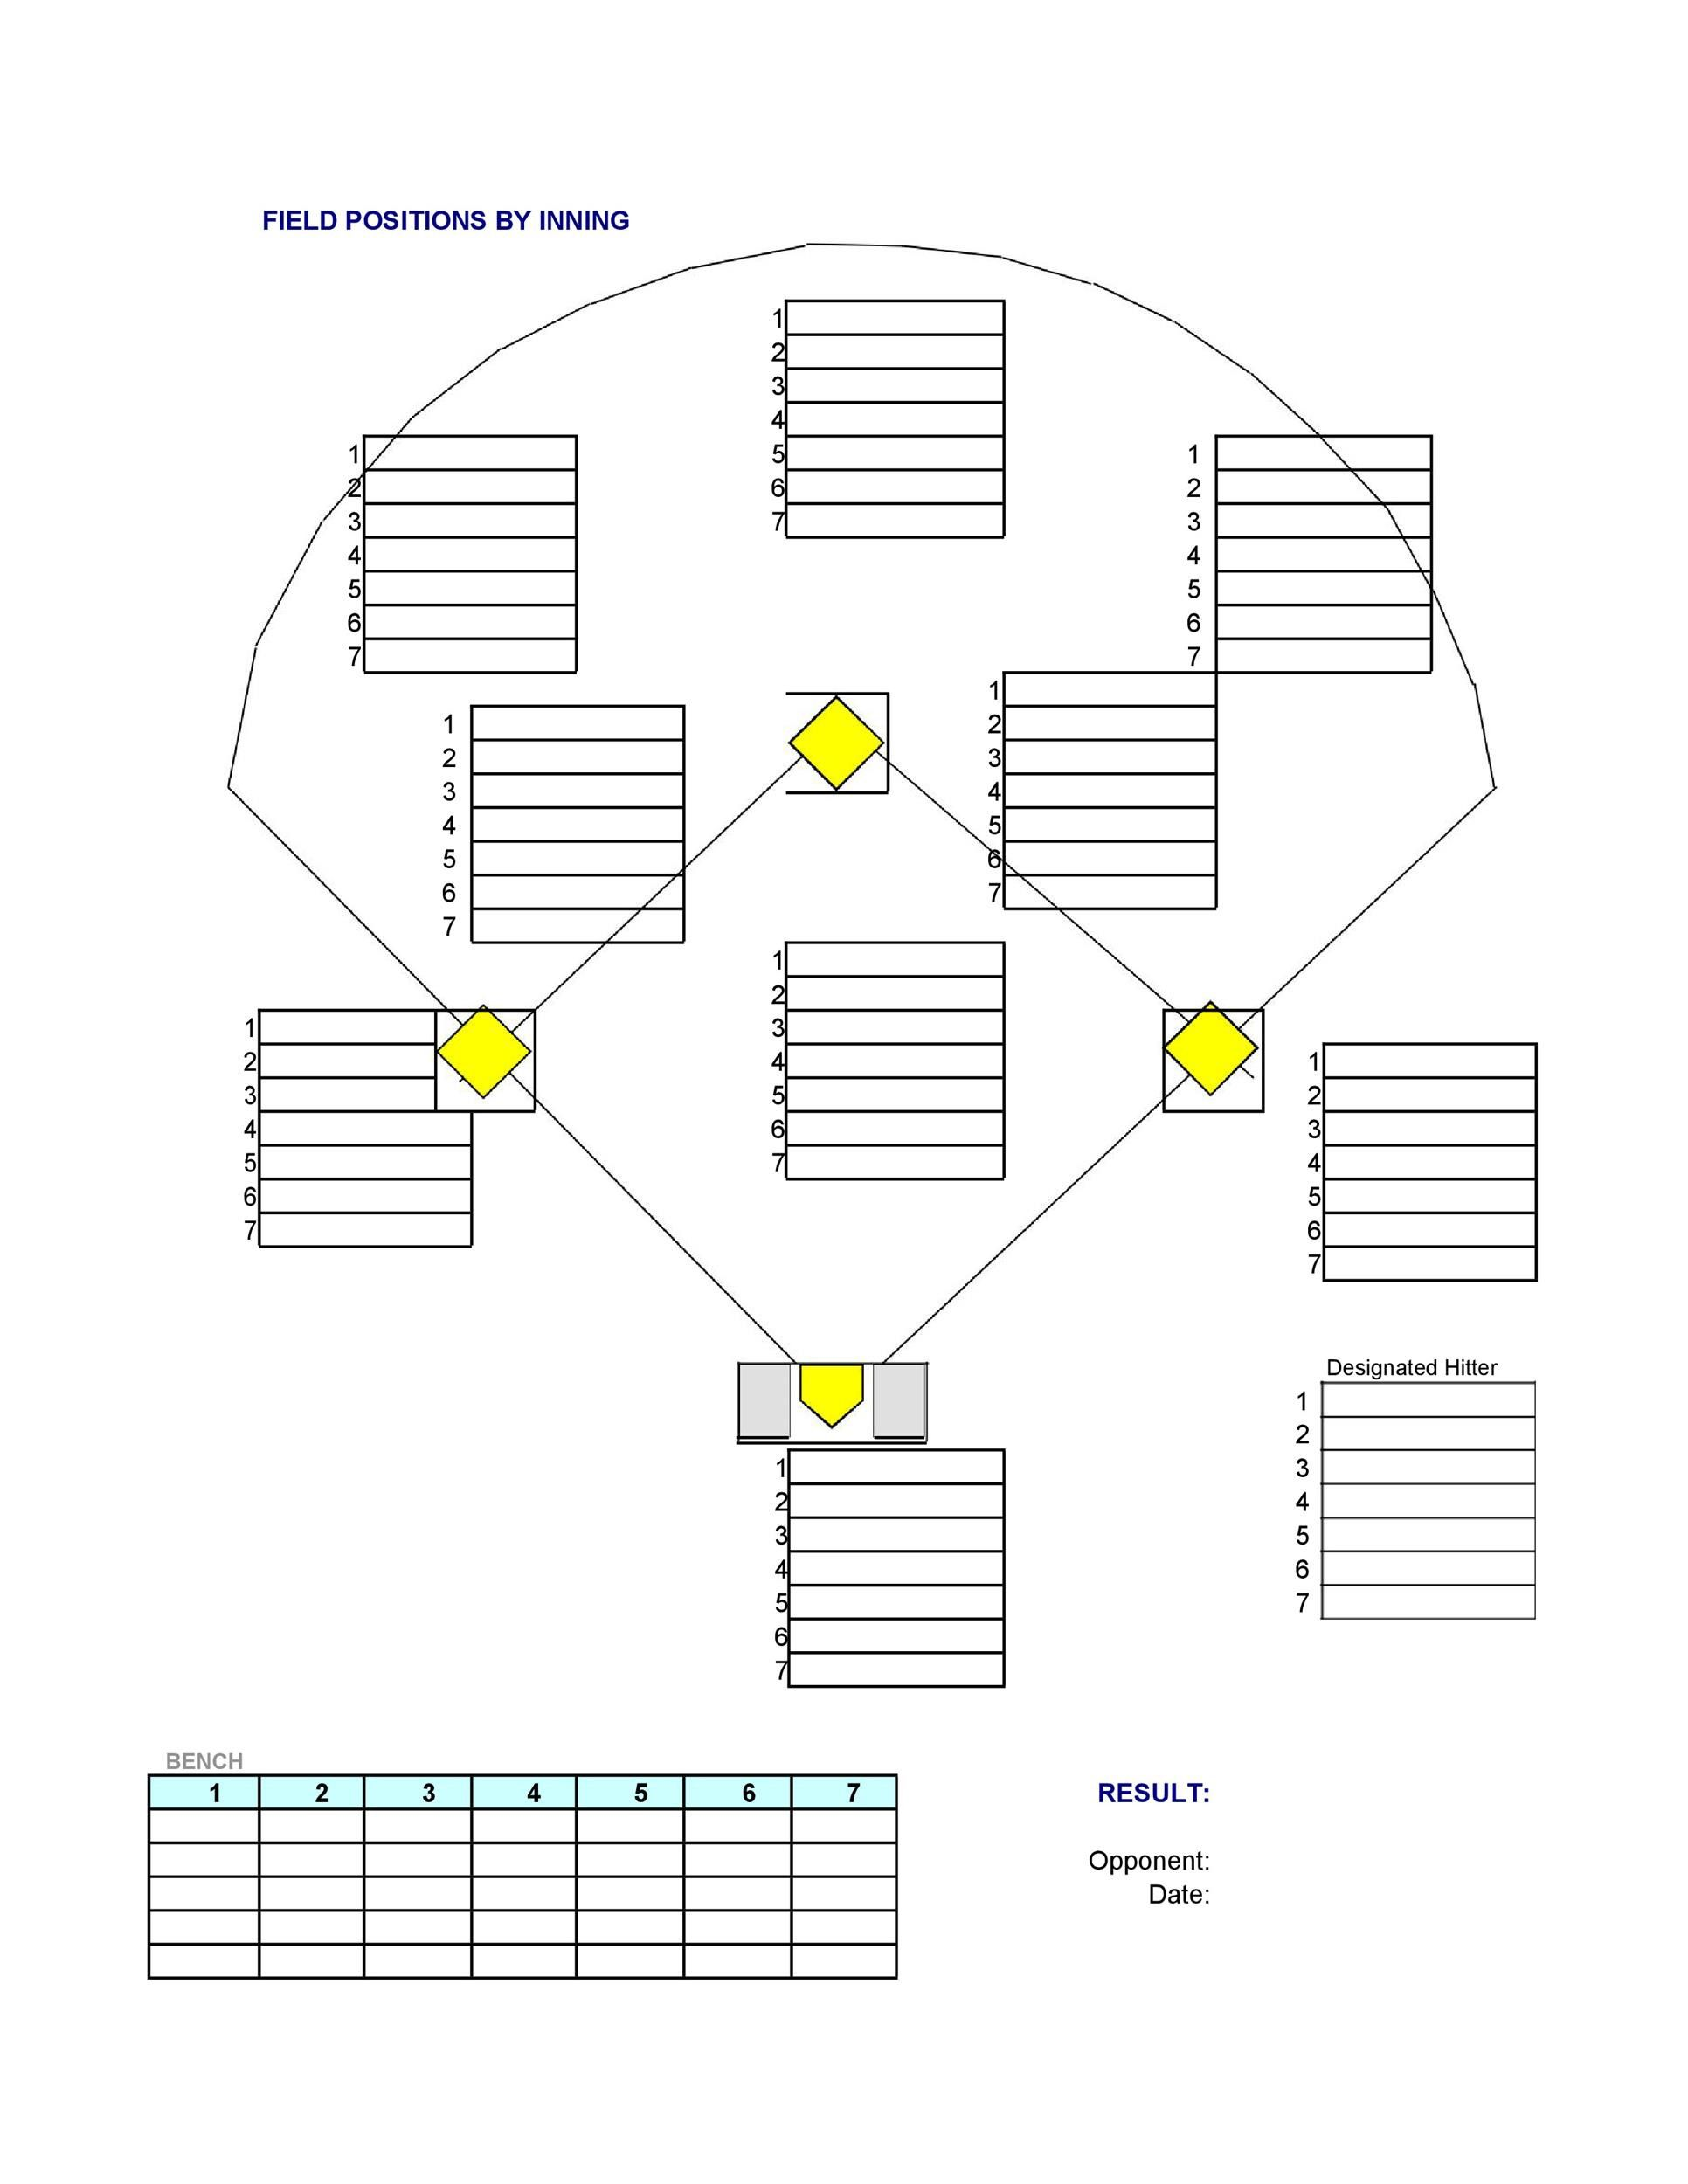 004 Astounding Softball Lineup Template Excel Highest Clarity  Batting Card RosterFull